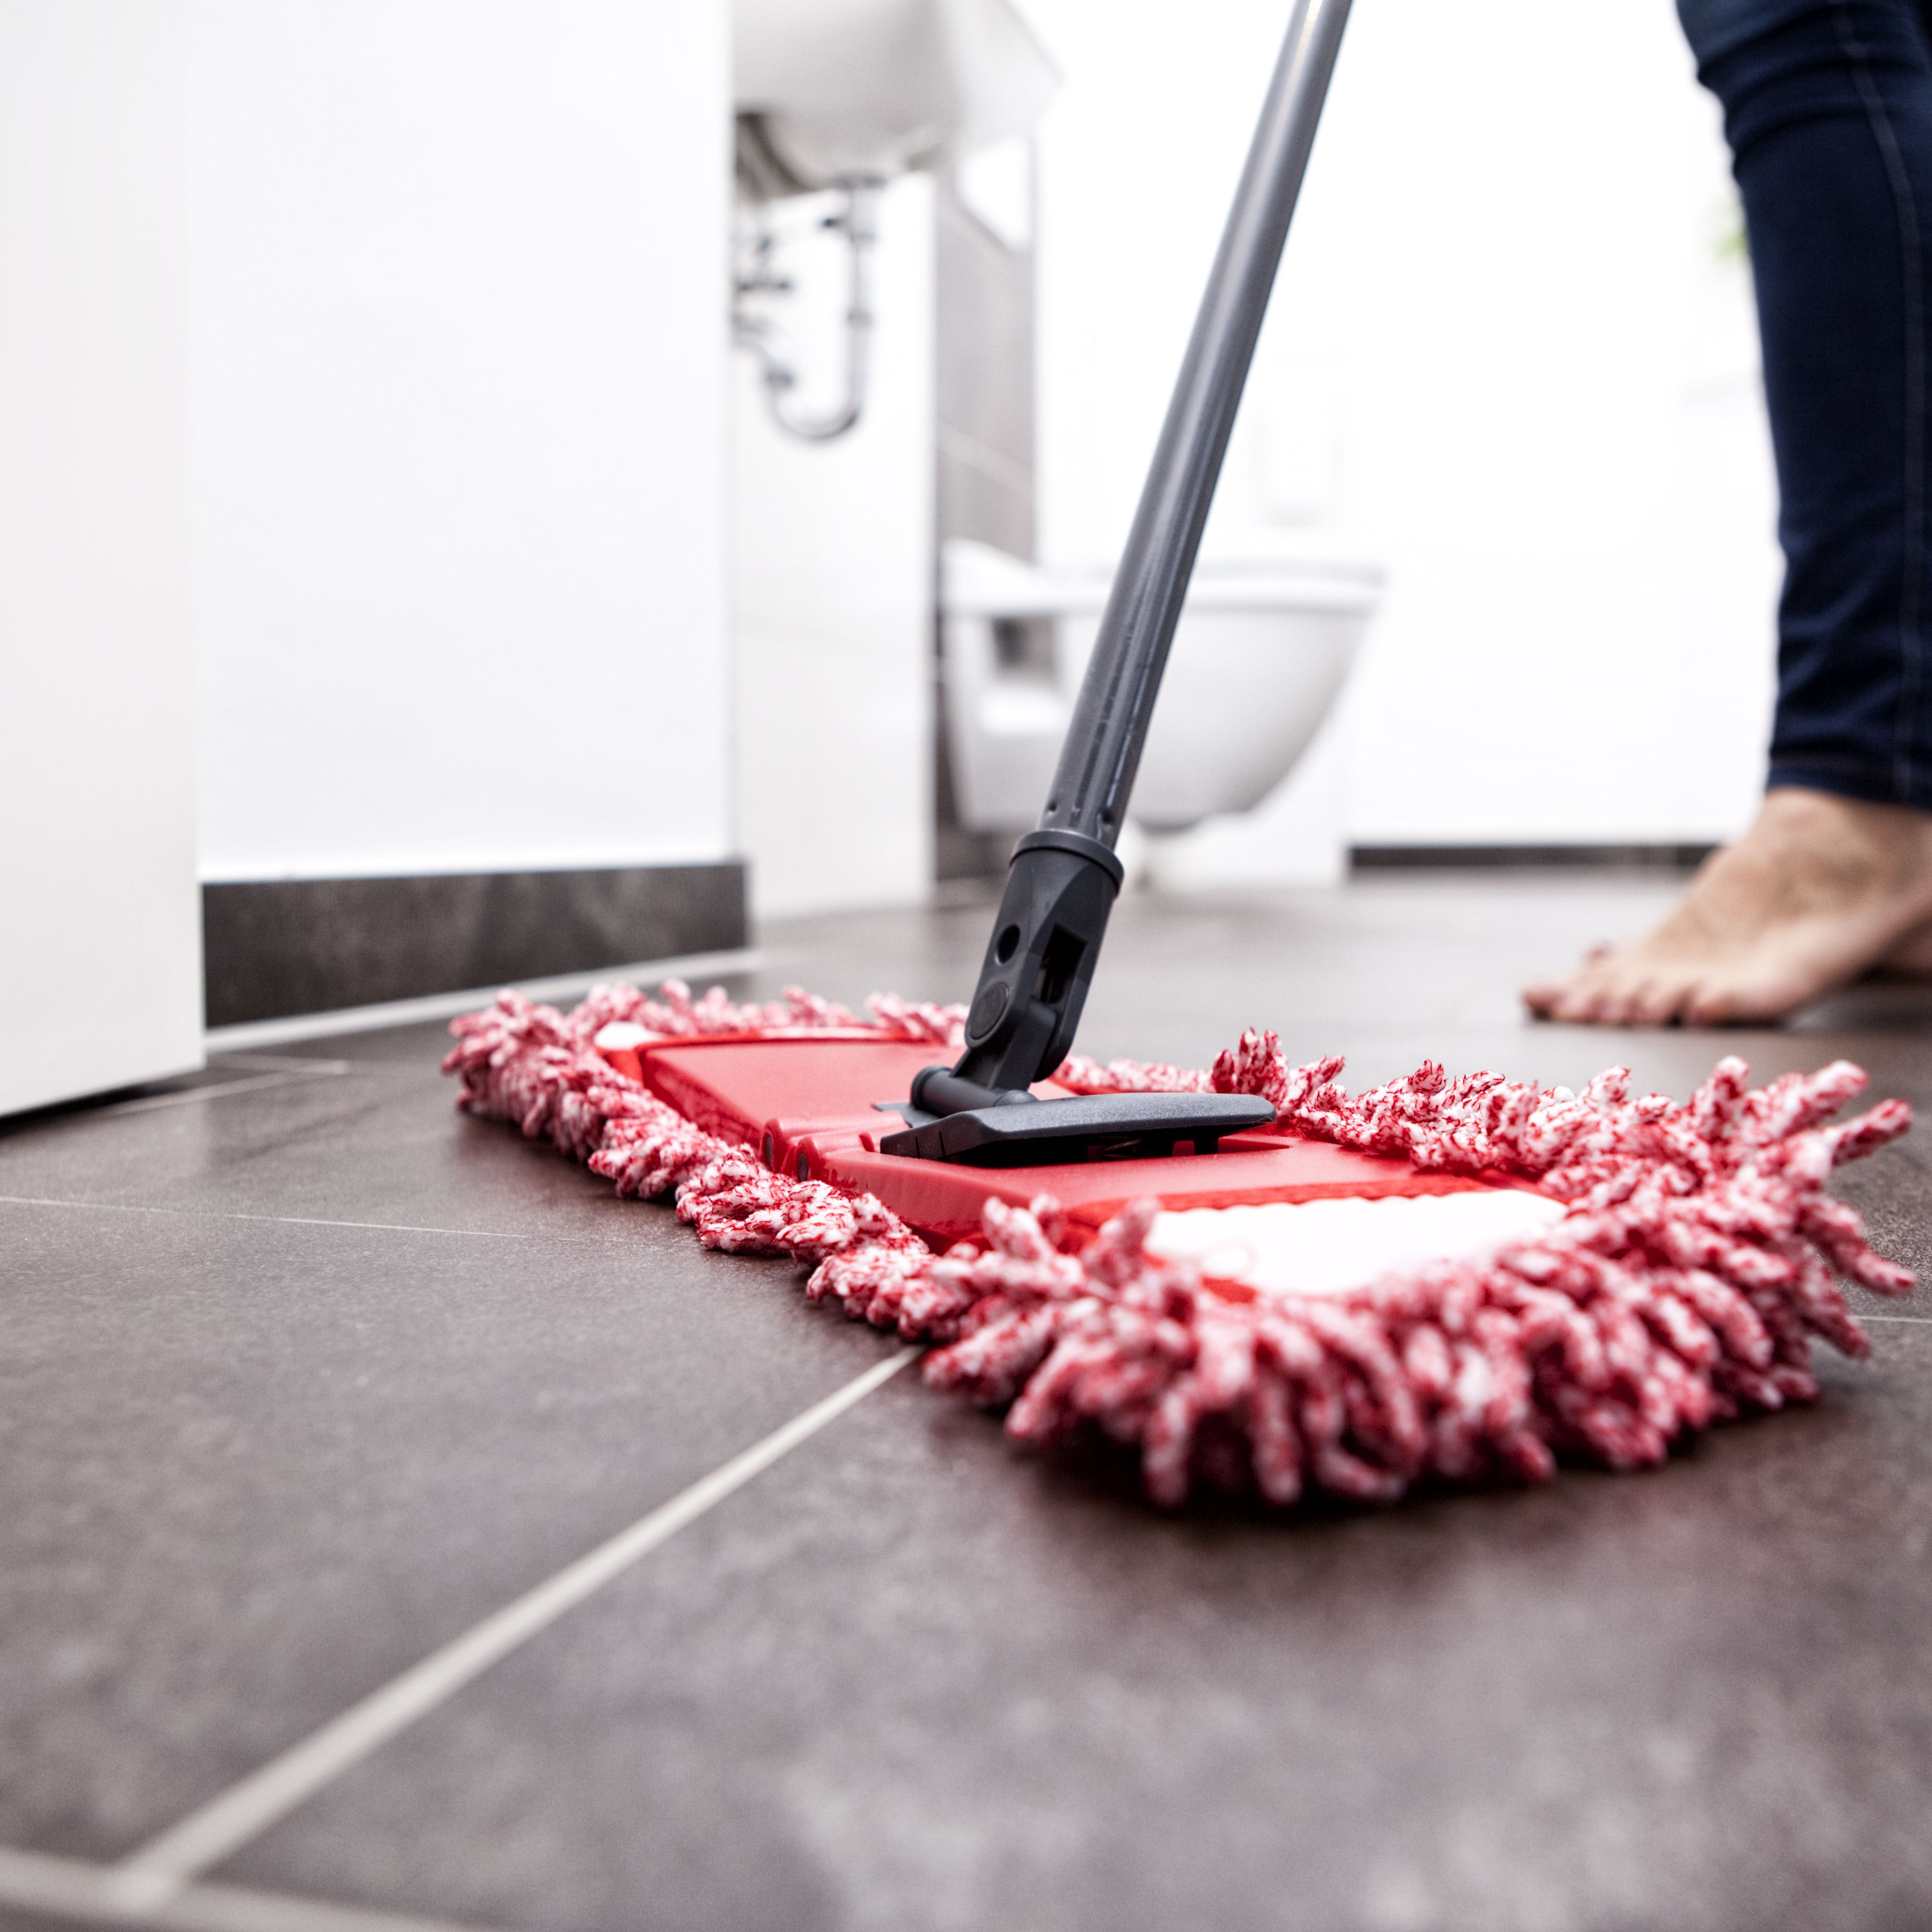 Sensational The 7 Best Tile Floor Cleaners Of 2019 Home Interior And Landscaping Ologienasavecom